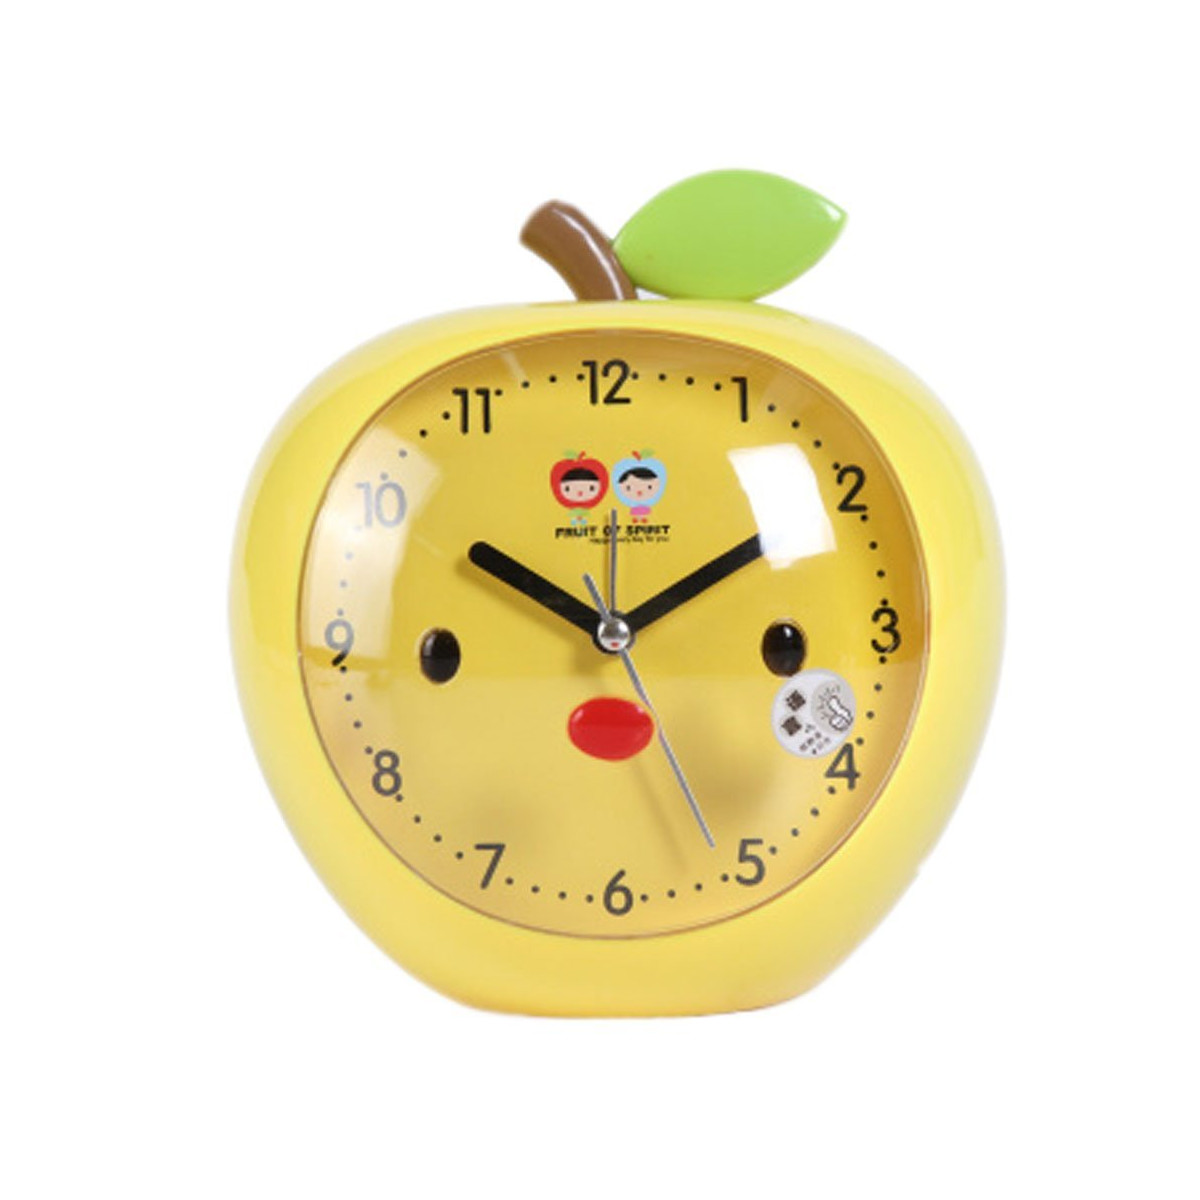 Apple-shaped alarm clock